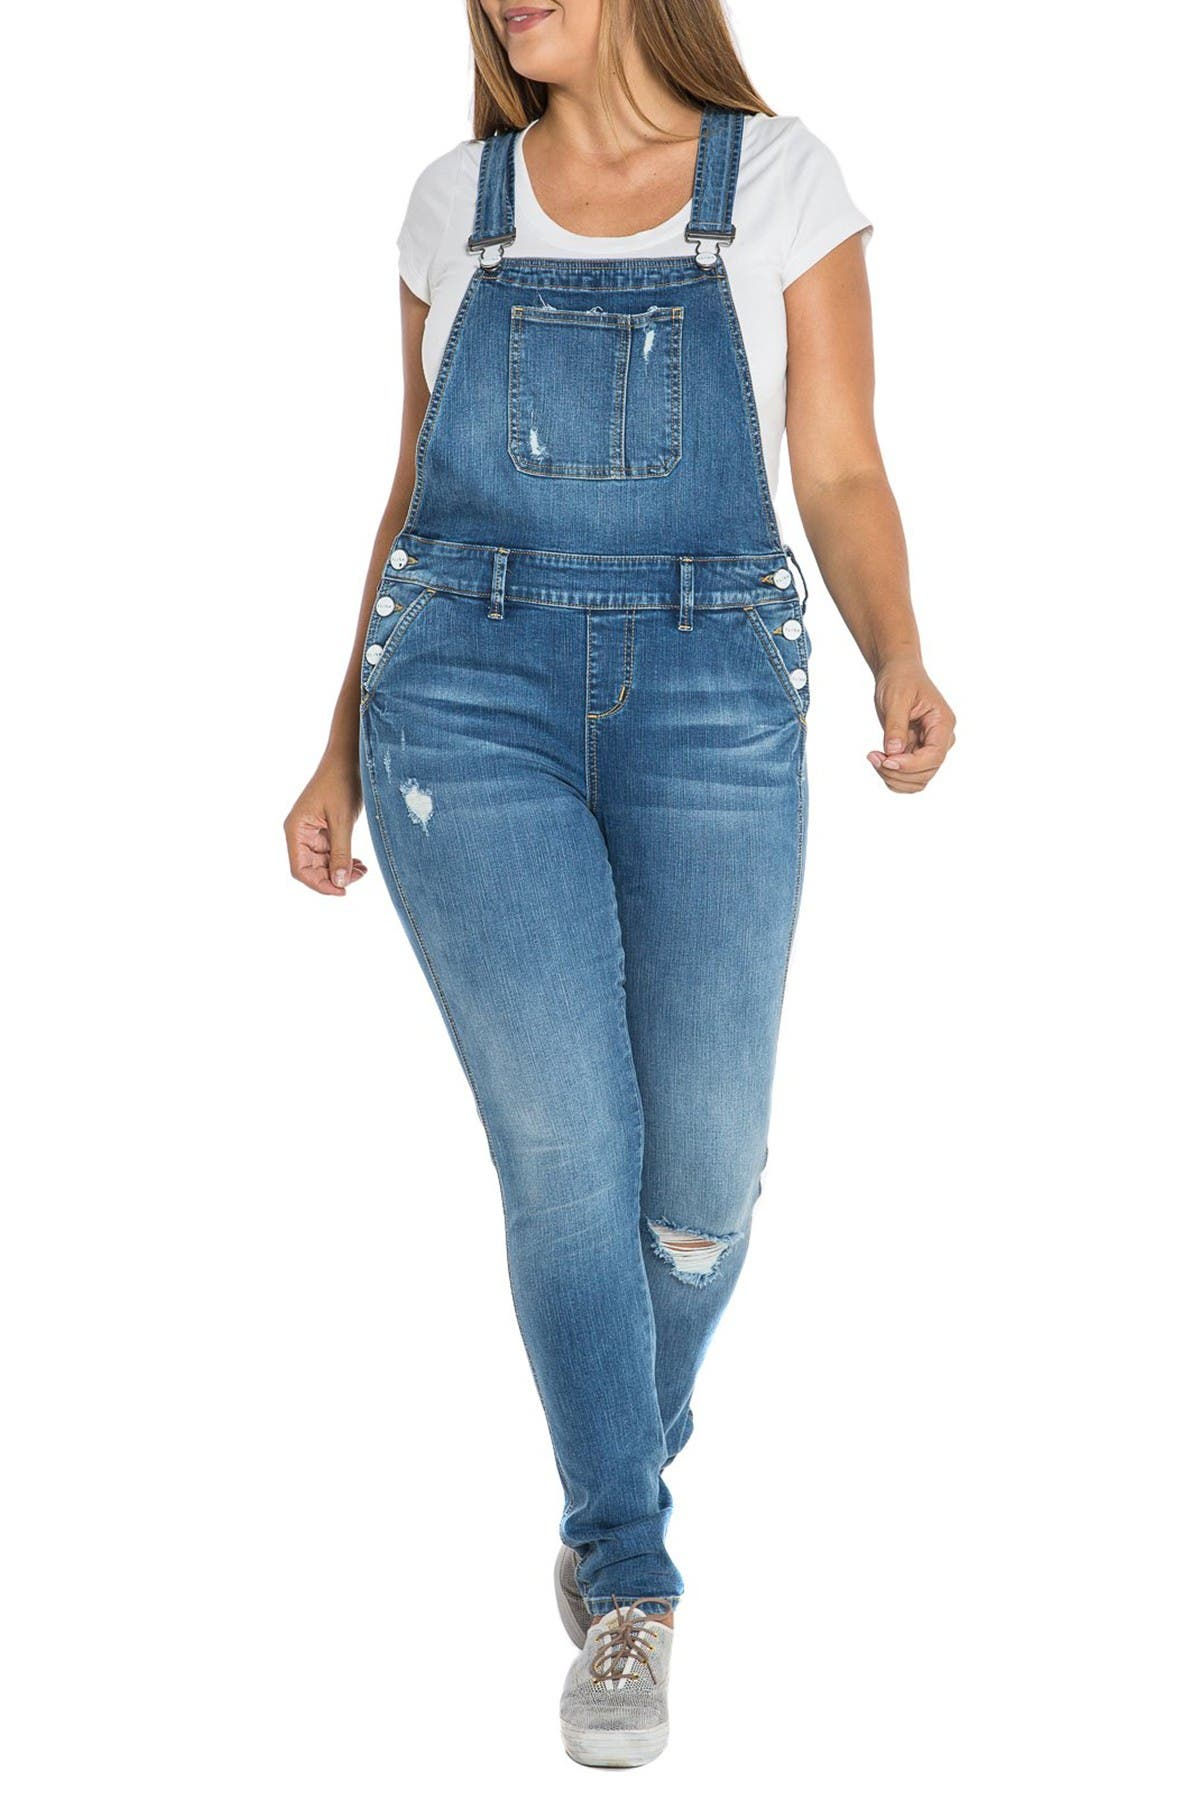 Image of SLINK JEANS Distressed Overalls